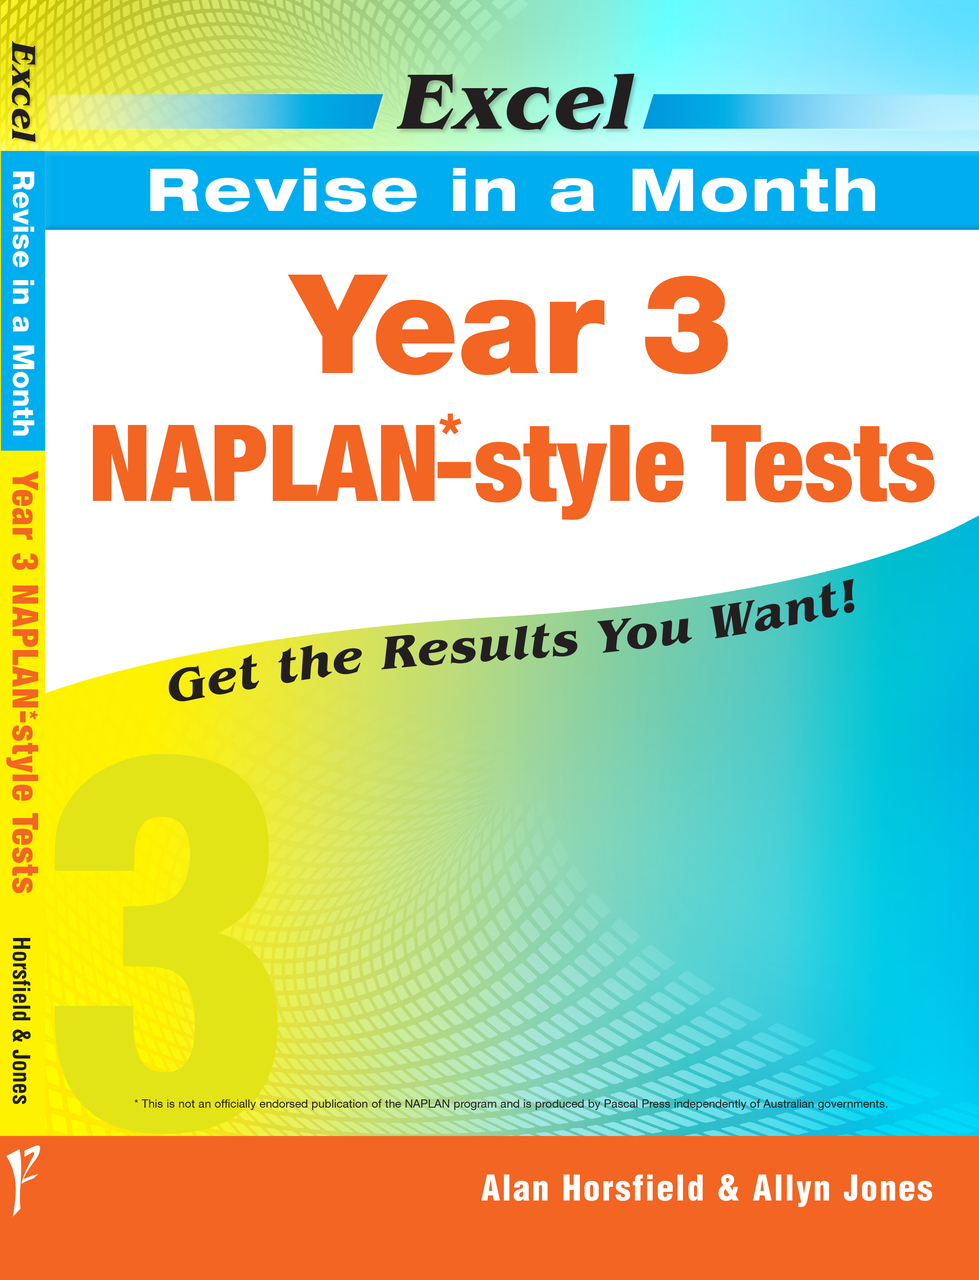 EXCEL REVISE IN A MONTH - YEAR 3 NAPLAN*-STYLE TESTS